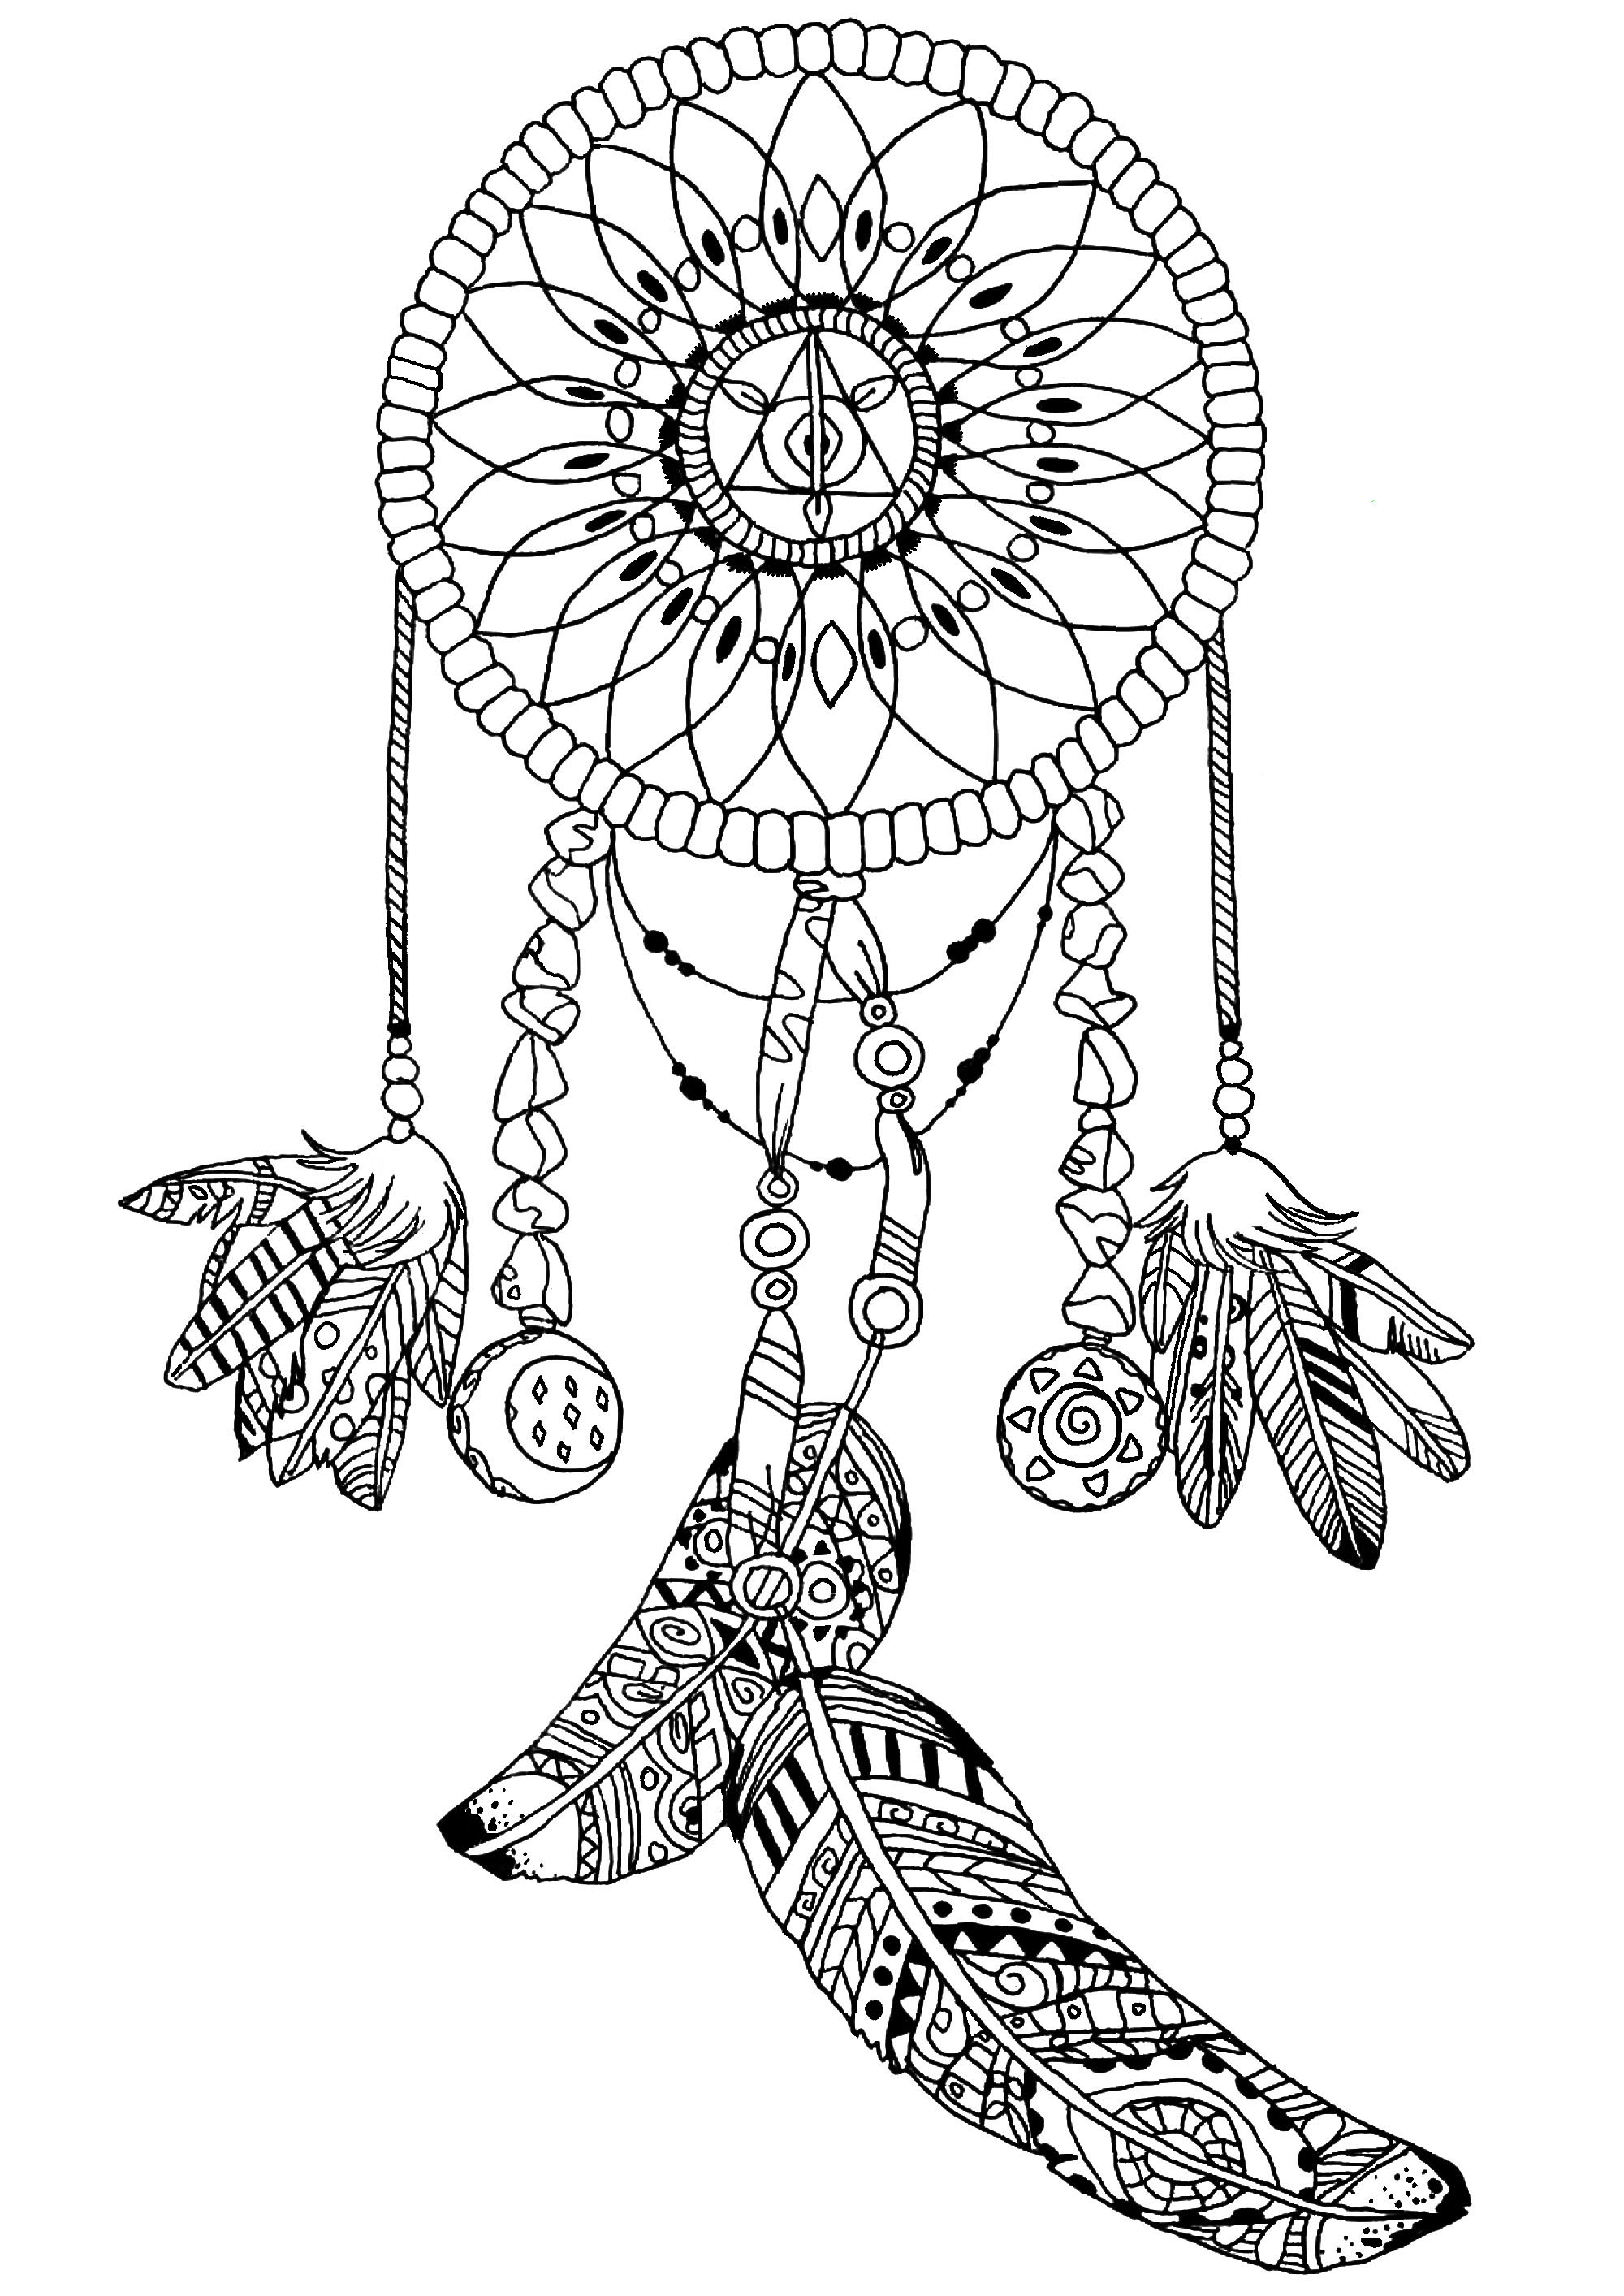 Coloring pages to print for adults